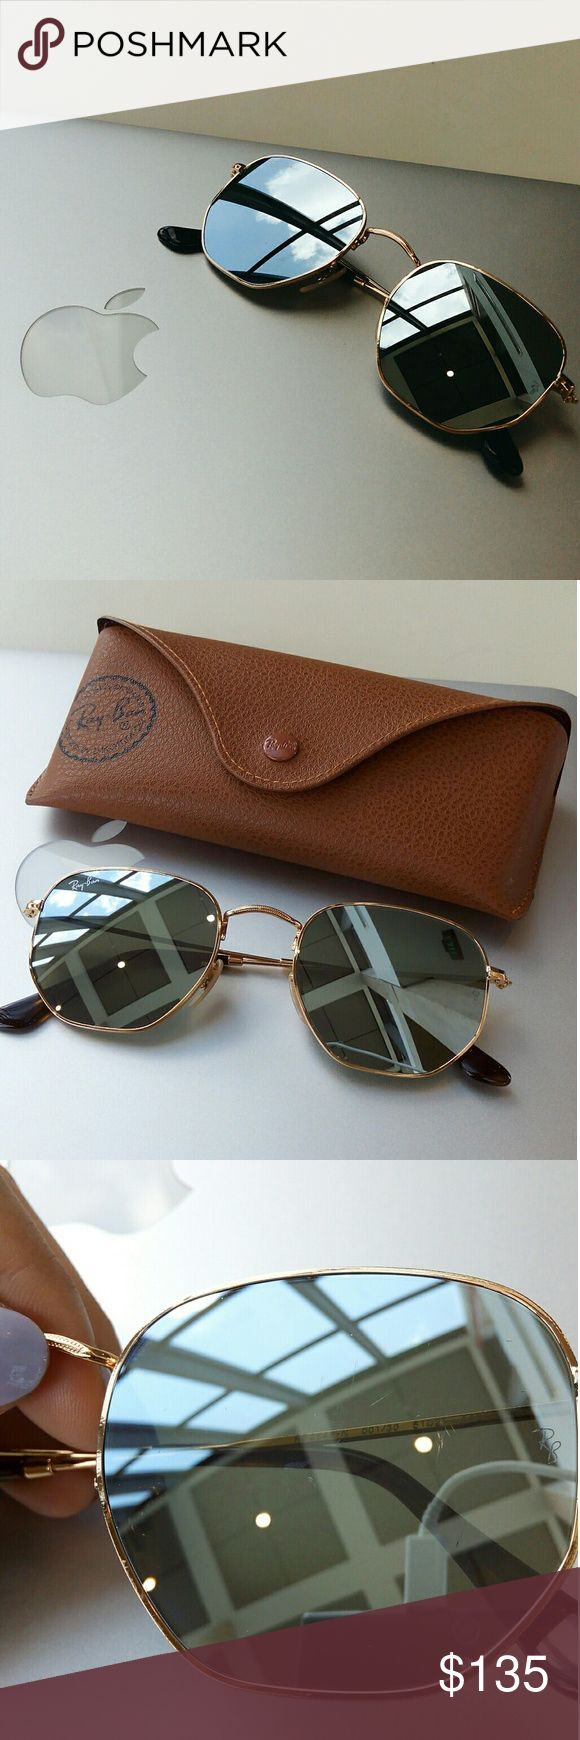 Ray Ban Hexagonal Flat Lenses (Offers are welcome) ??100% Authentic (purchased from ASOS) ??Color: Silver Flash Lenses w/ Gold frames ??Will come with its original box, case, cloth, & manual  I've owned these for only 3 months and rarely worn them. Unfortunately, my brother borrowed and scratched them. So, these do contain faint scratches on the left lens. I've tried my best to capture them in the photos.   I'm accepting reasonable offers!   More photos of the other materials will be up when…